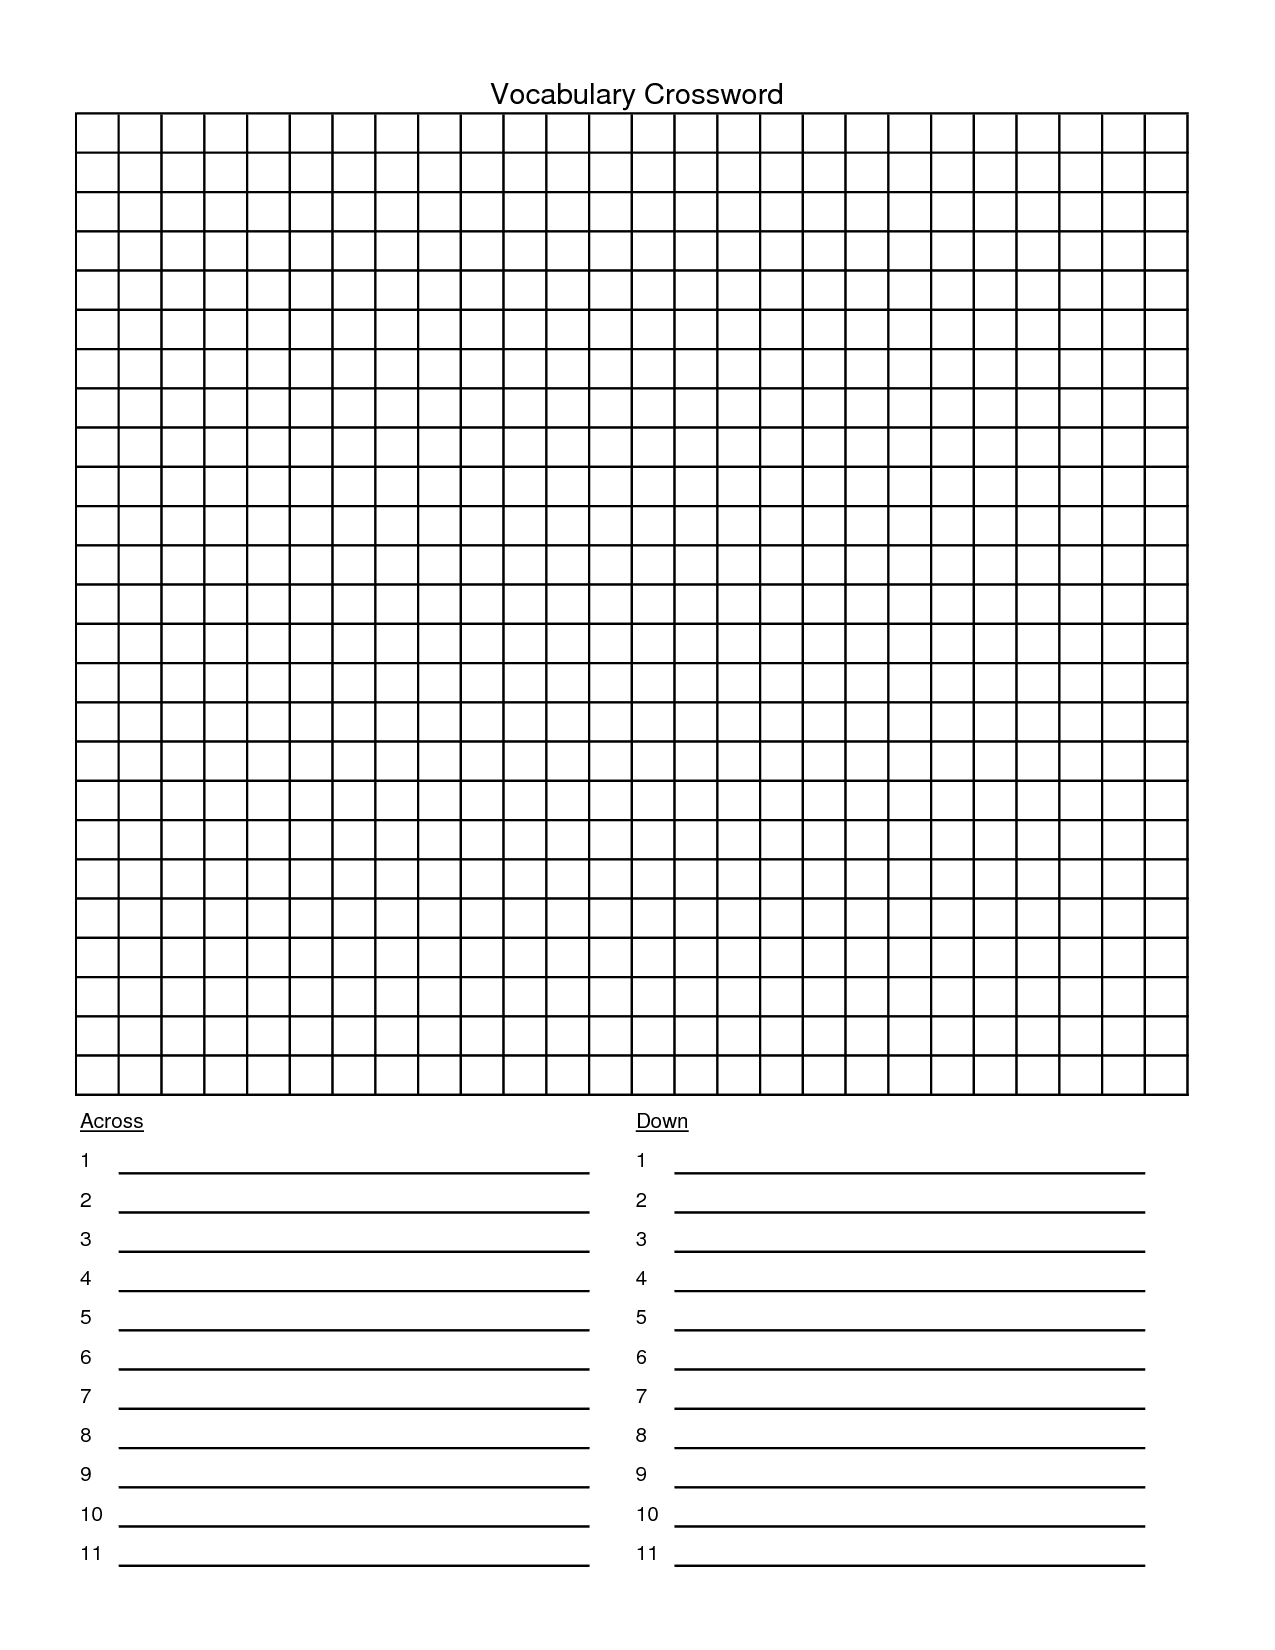 Blank Crossword Puzzle Template